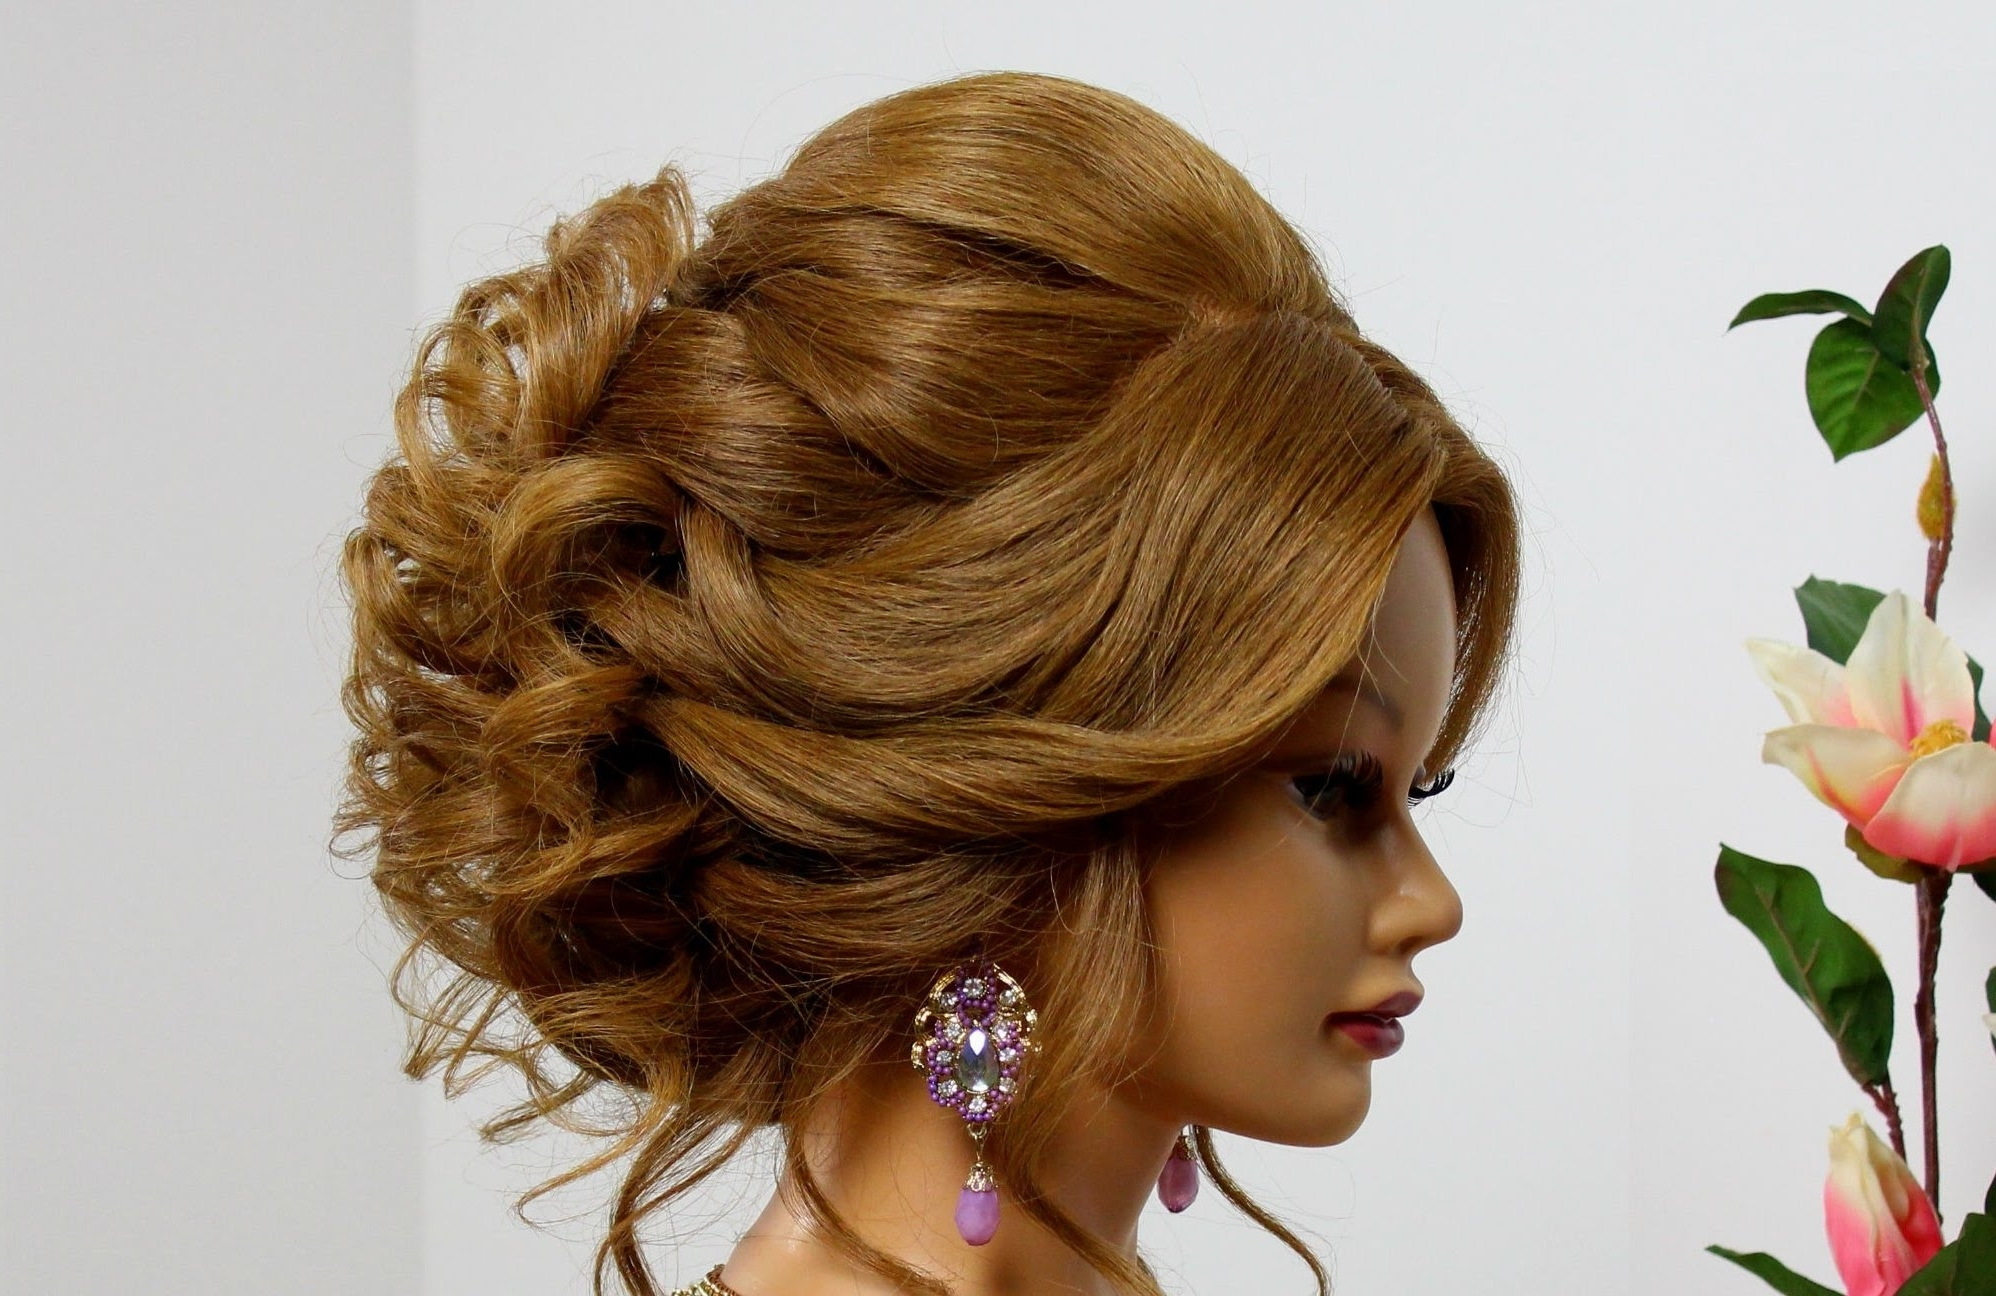 Trendy Wedding Evening Hairstyles Intended For Prom Hairstyles For Medium Hair Updos – Hairstyle For Women & Man (View 10 of 15)